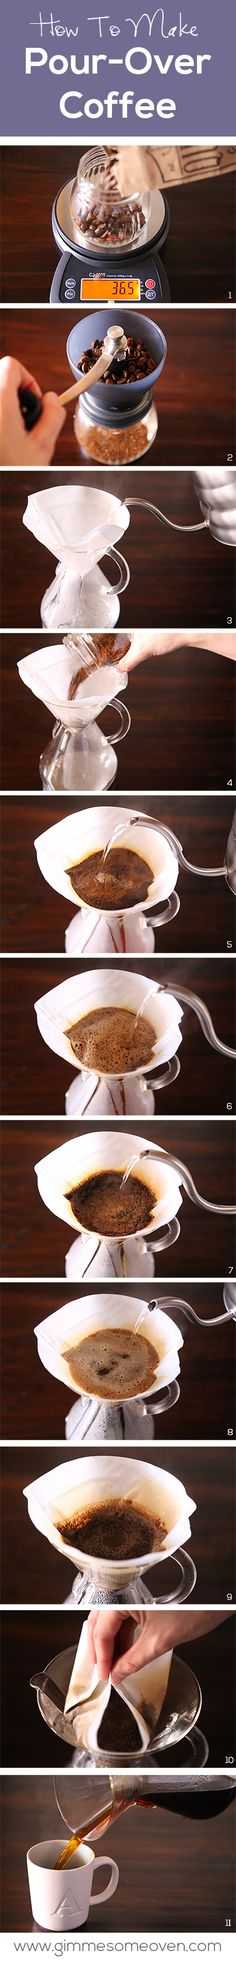 How To Make Pour-Over Coffee | gimmesomeoven.com